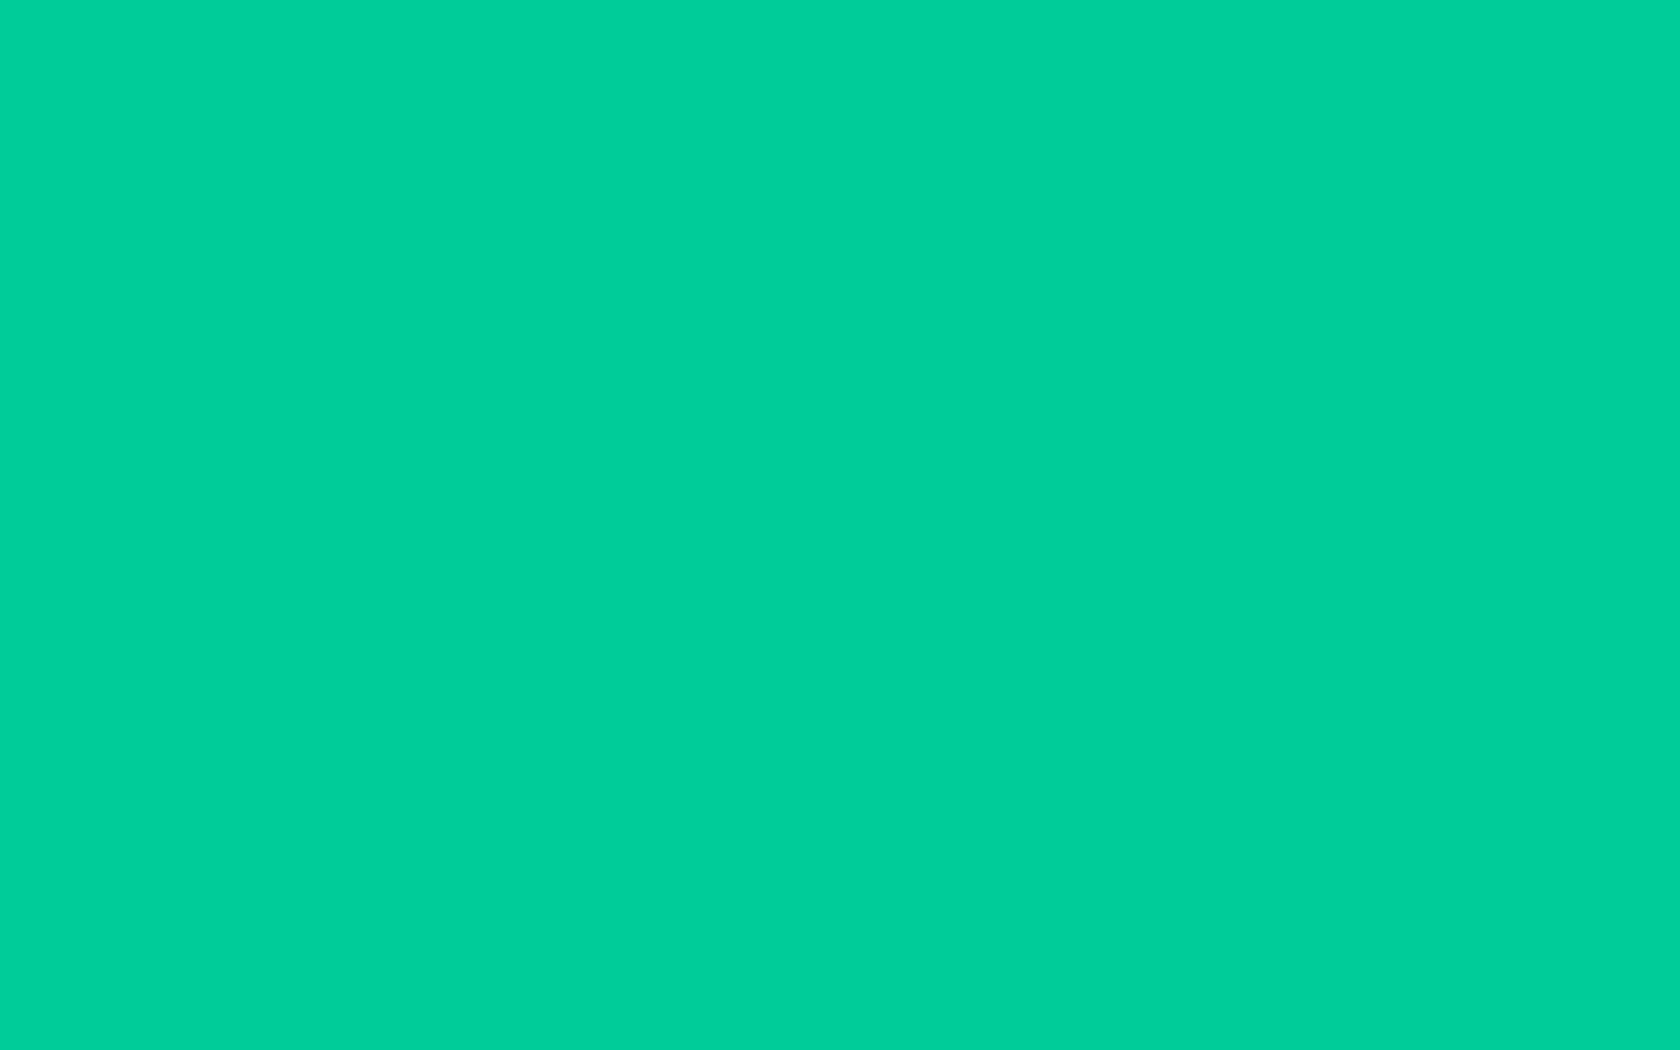 1680x1050 Caribbean Green Solid Color Background